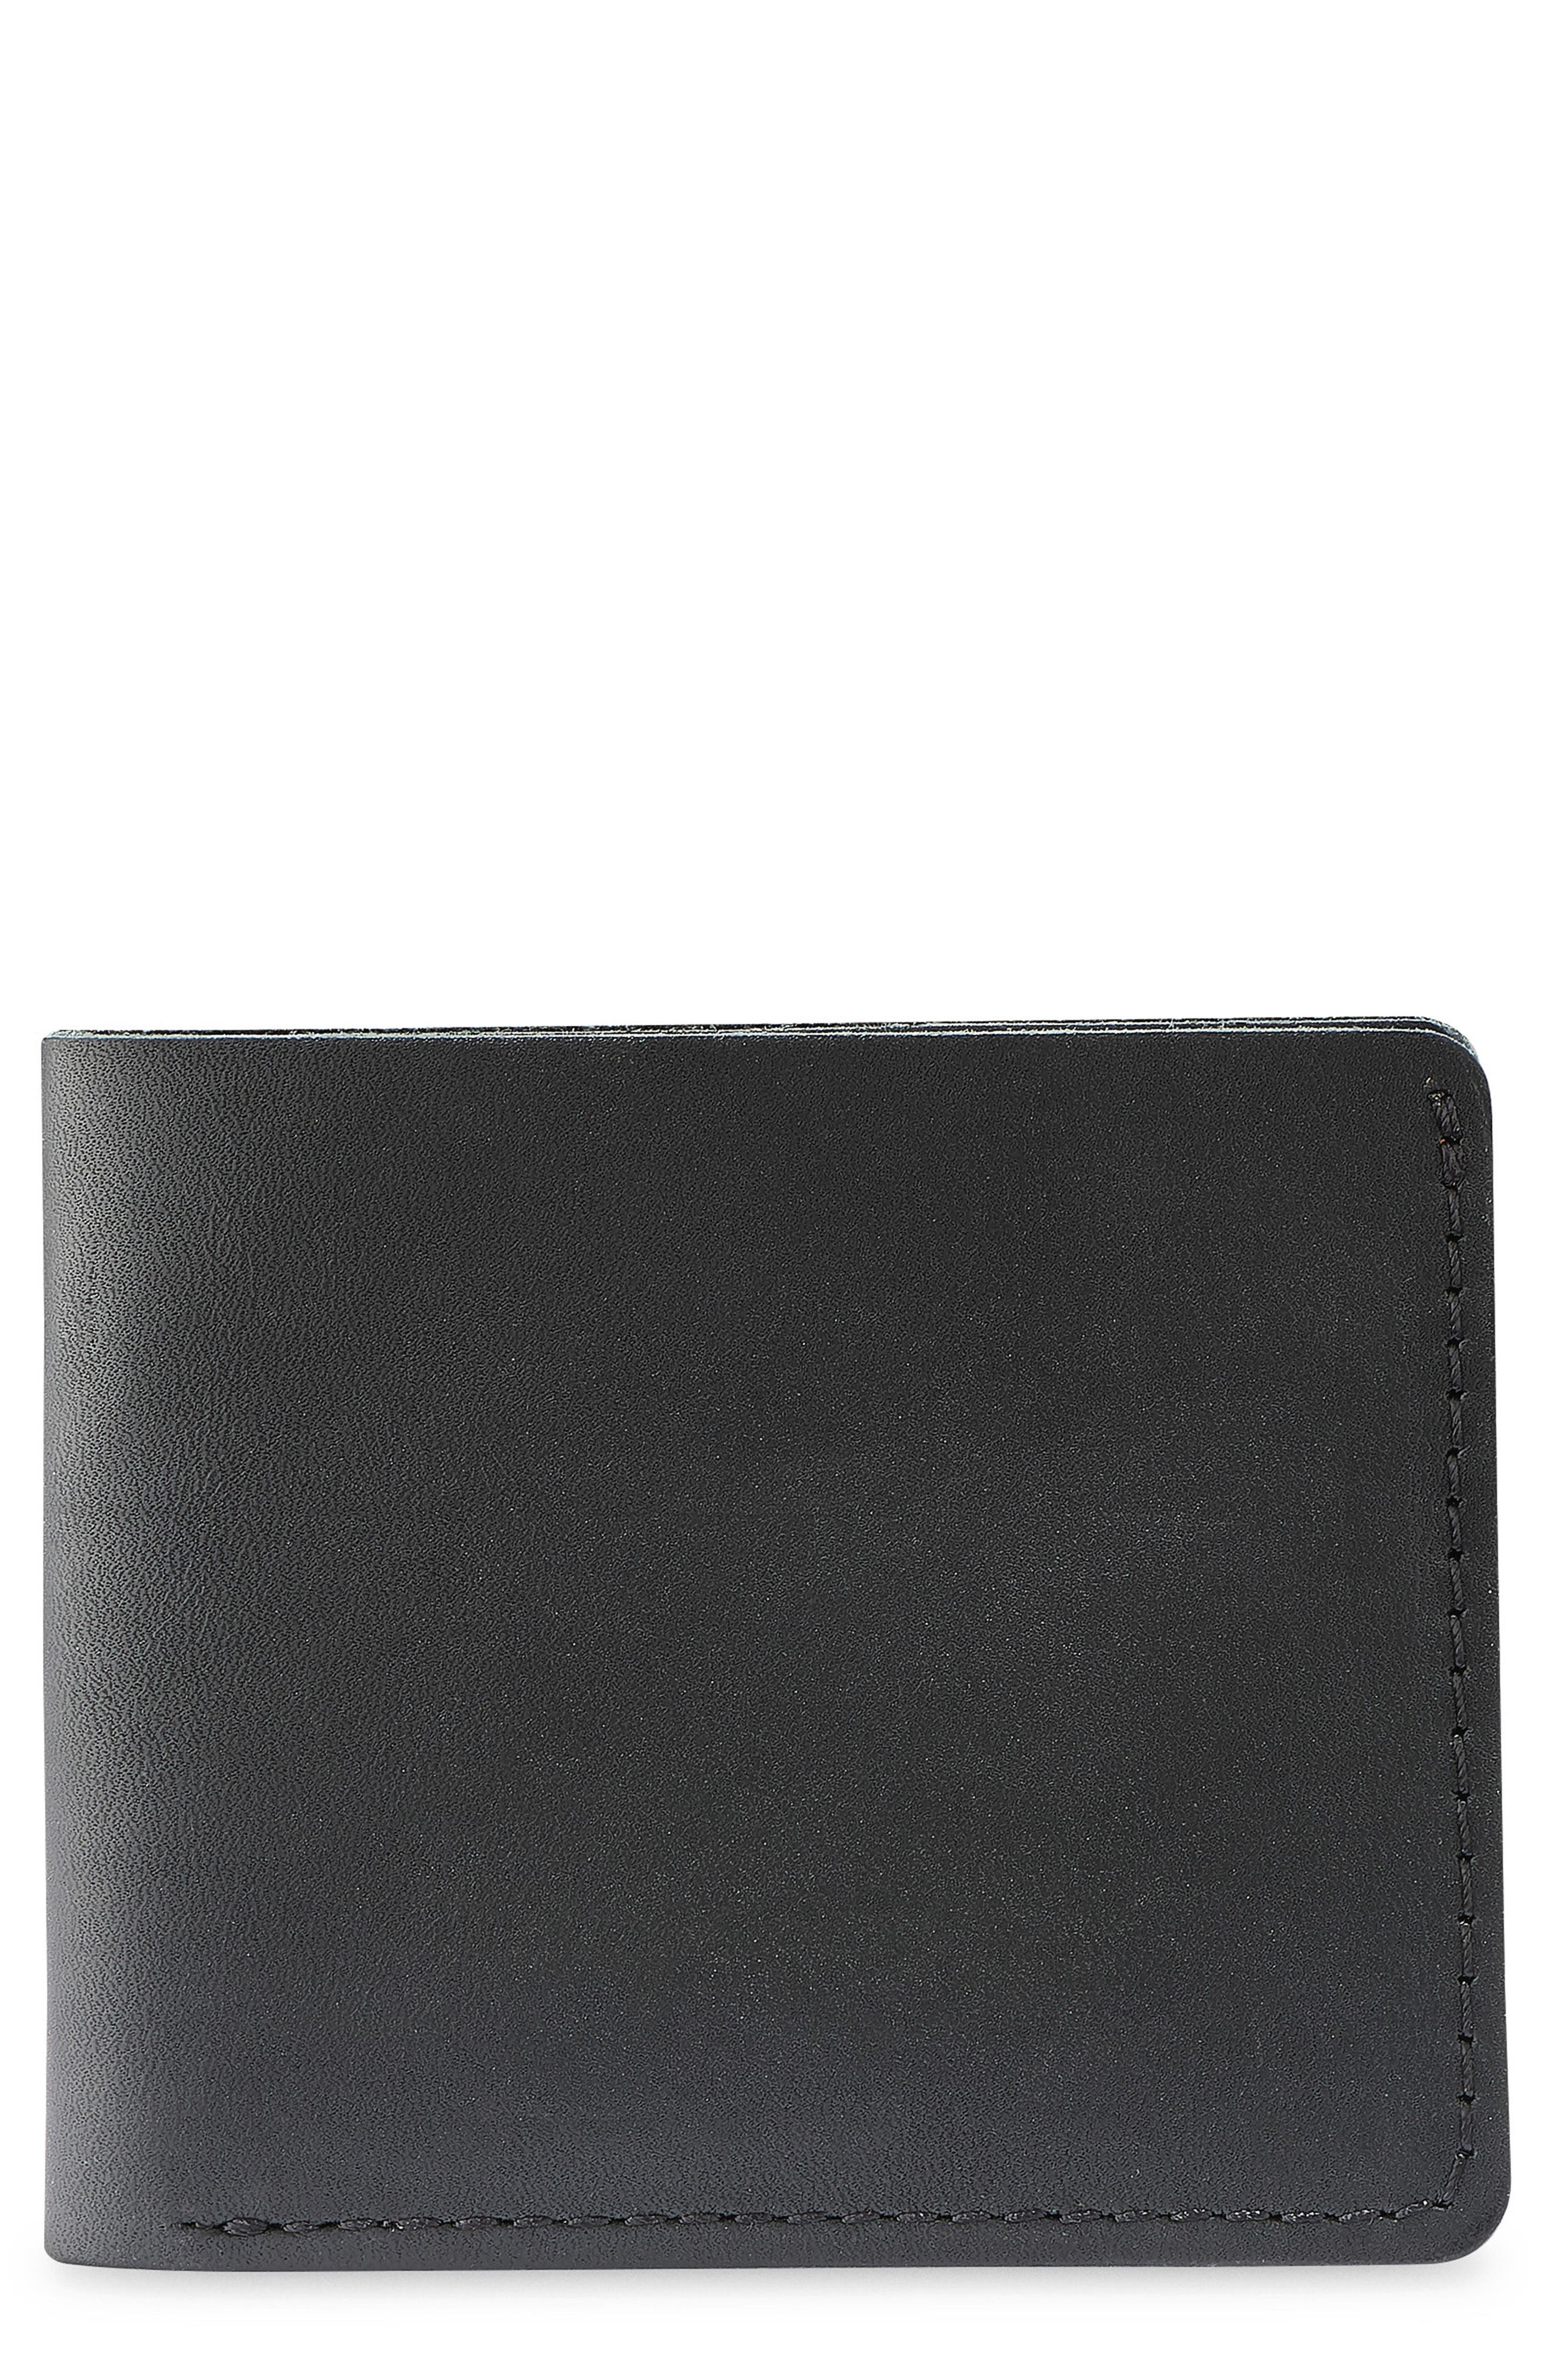 Classic Bifold Leather Wallet,                             Main thumbnail 1, color,                             BLACK